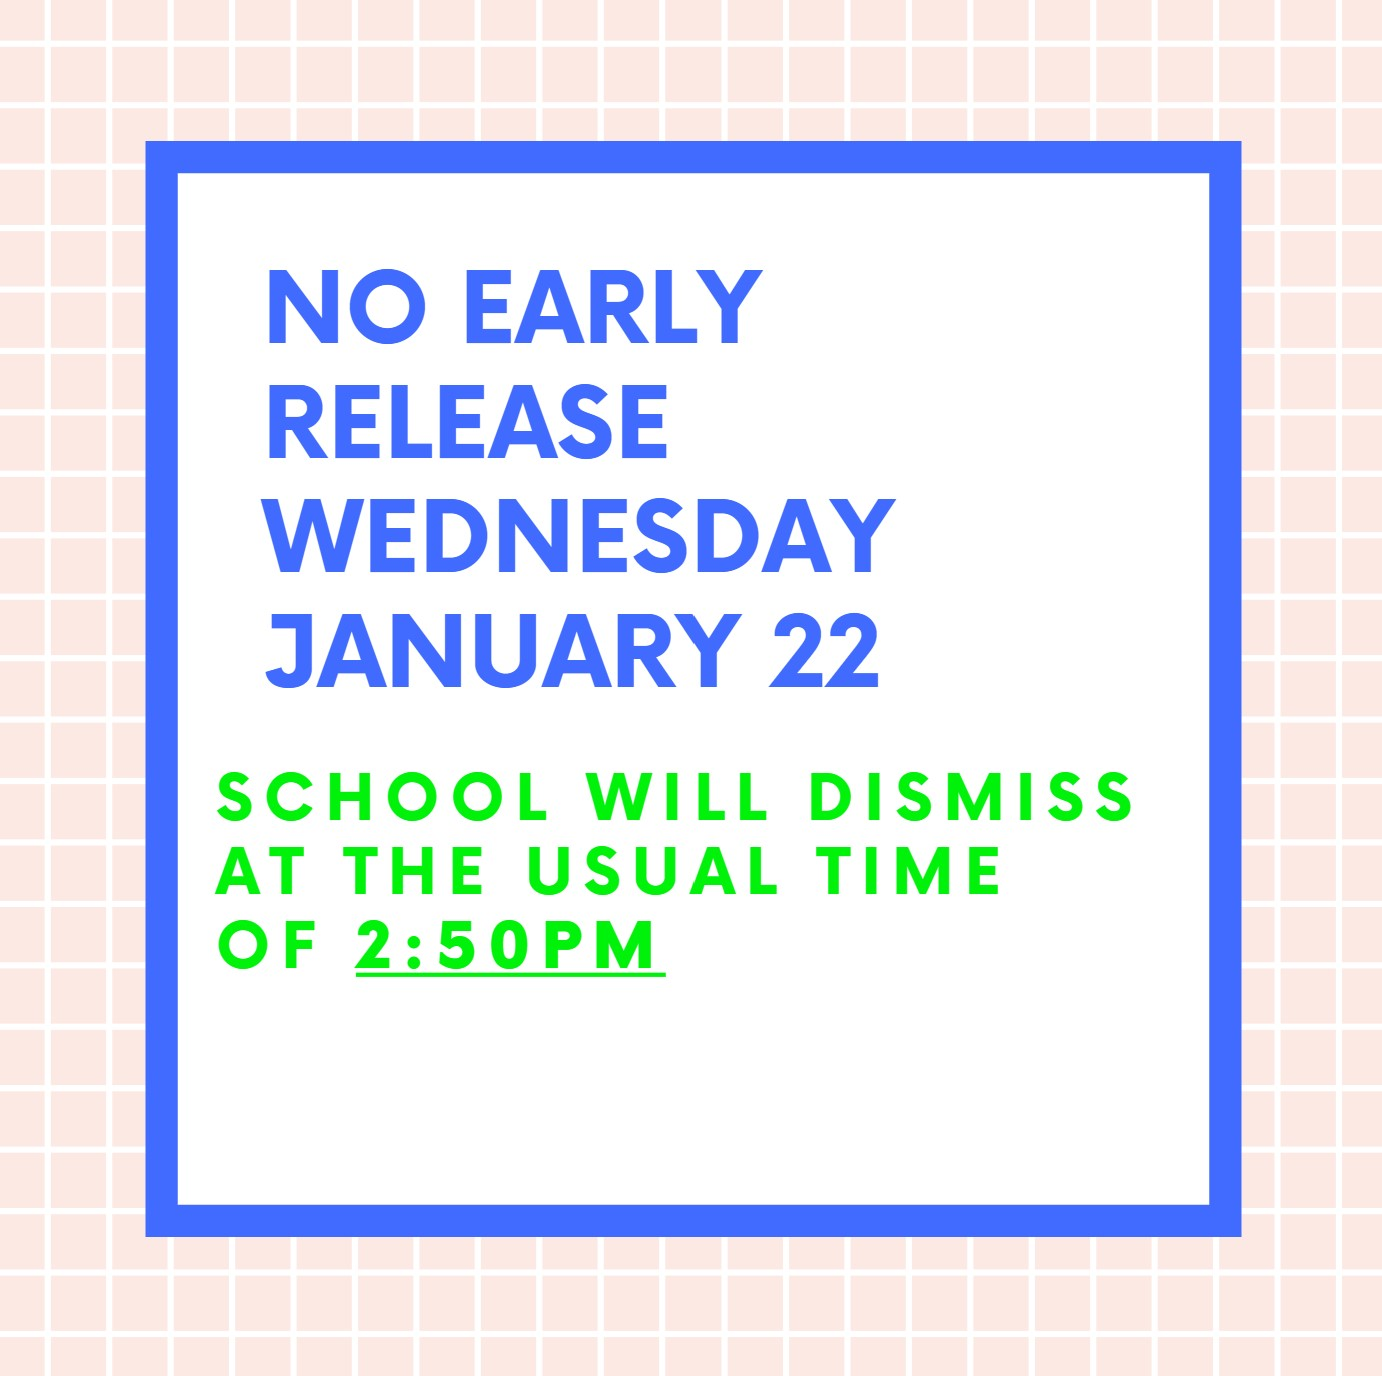 No Early Release on January 22nd. School Dismisses at 2:50